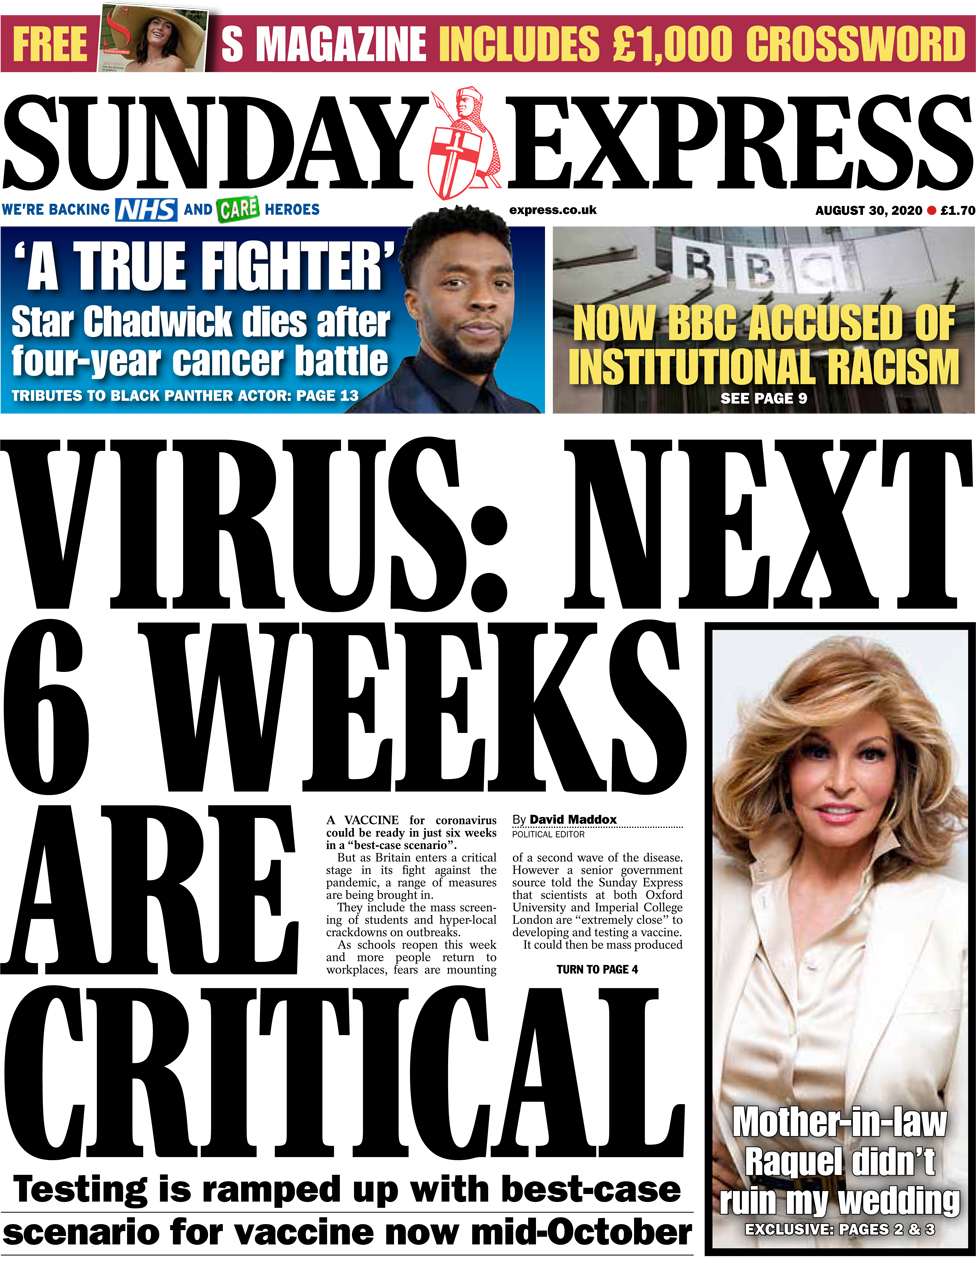 The Sunday Express front page 30 August 2020